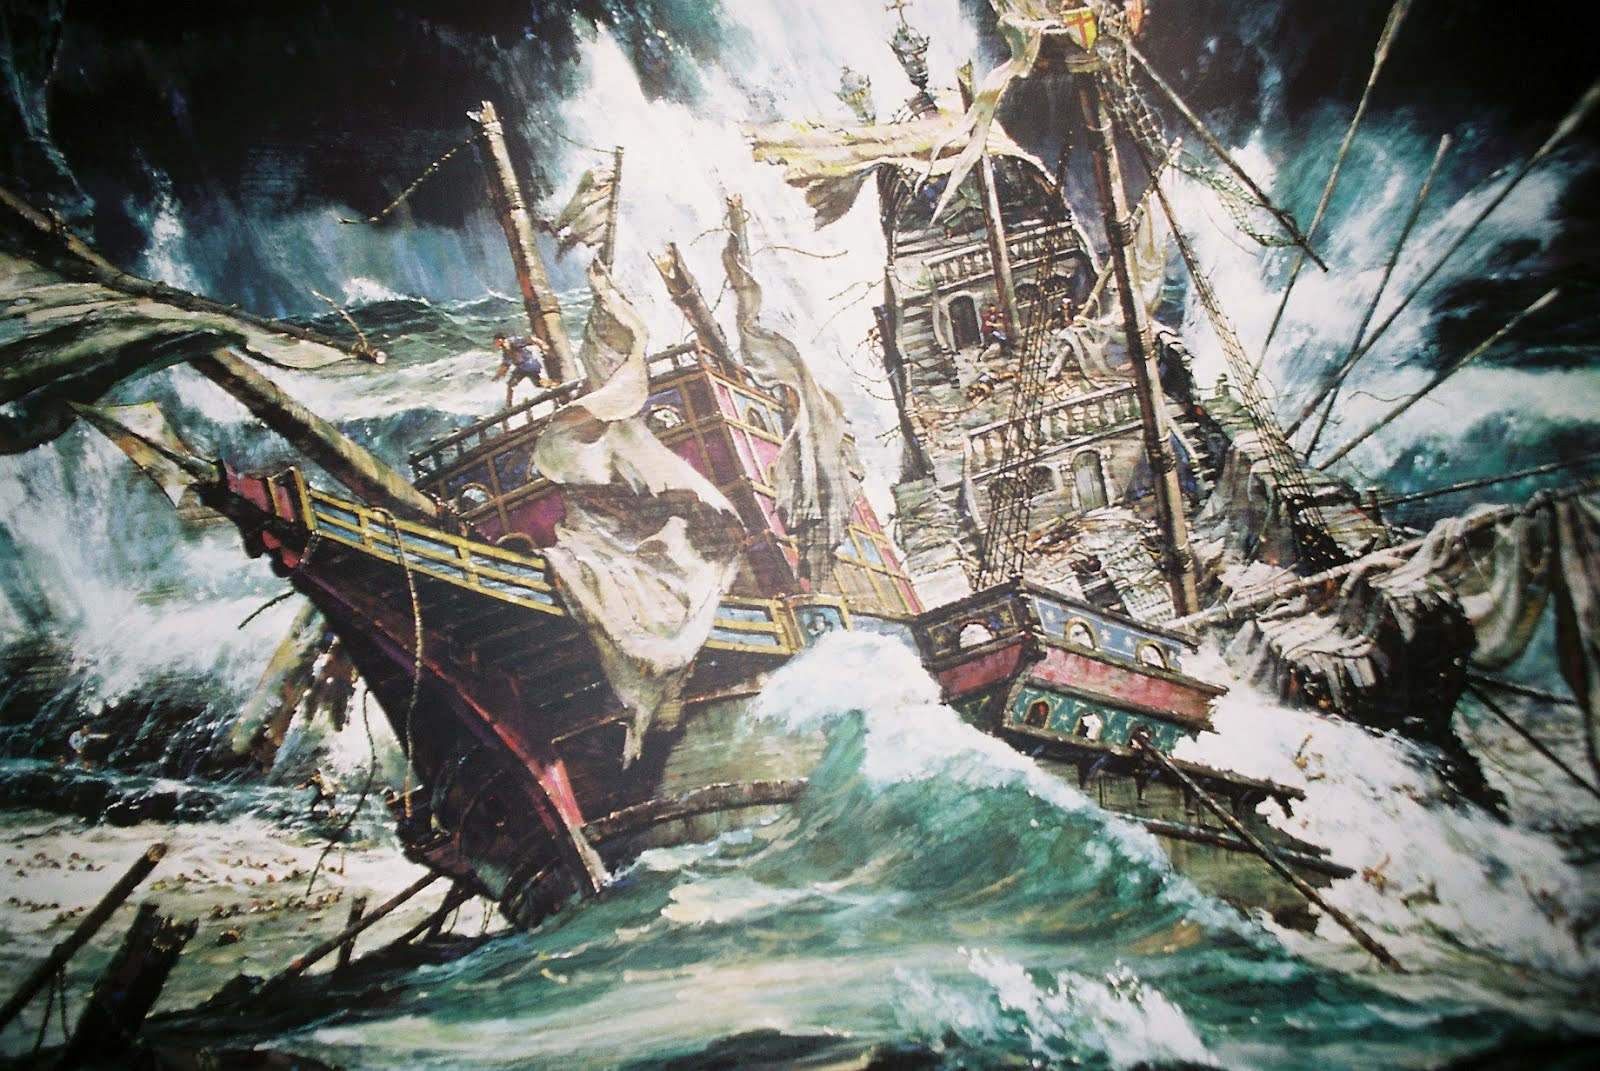 graphic firing table battles long ago armada 1588 half the armada were wrecked and thousands of spaniards died perhaps the ugliest part of that story is that most of the crews that survived the storms and